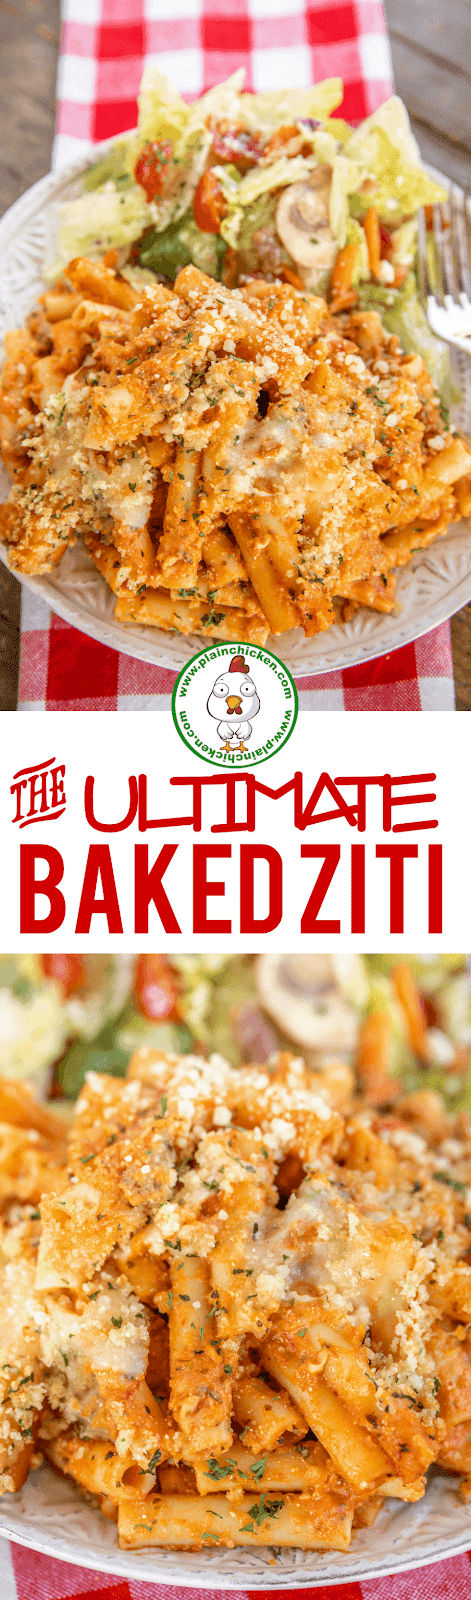 collage of 2 photos of baked ziti on a plate